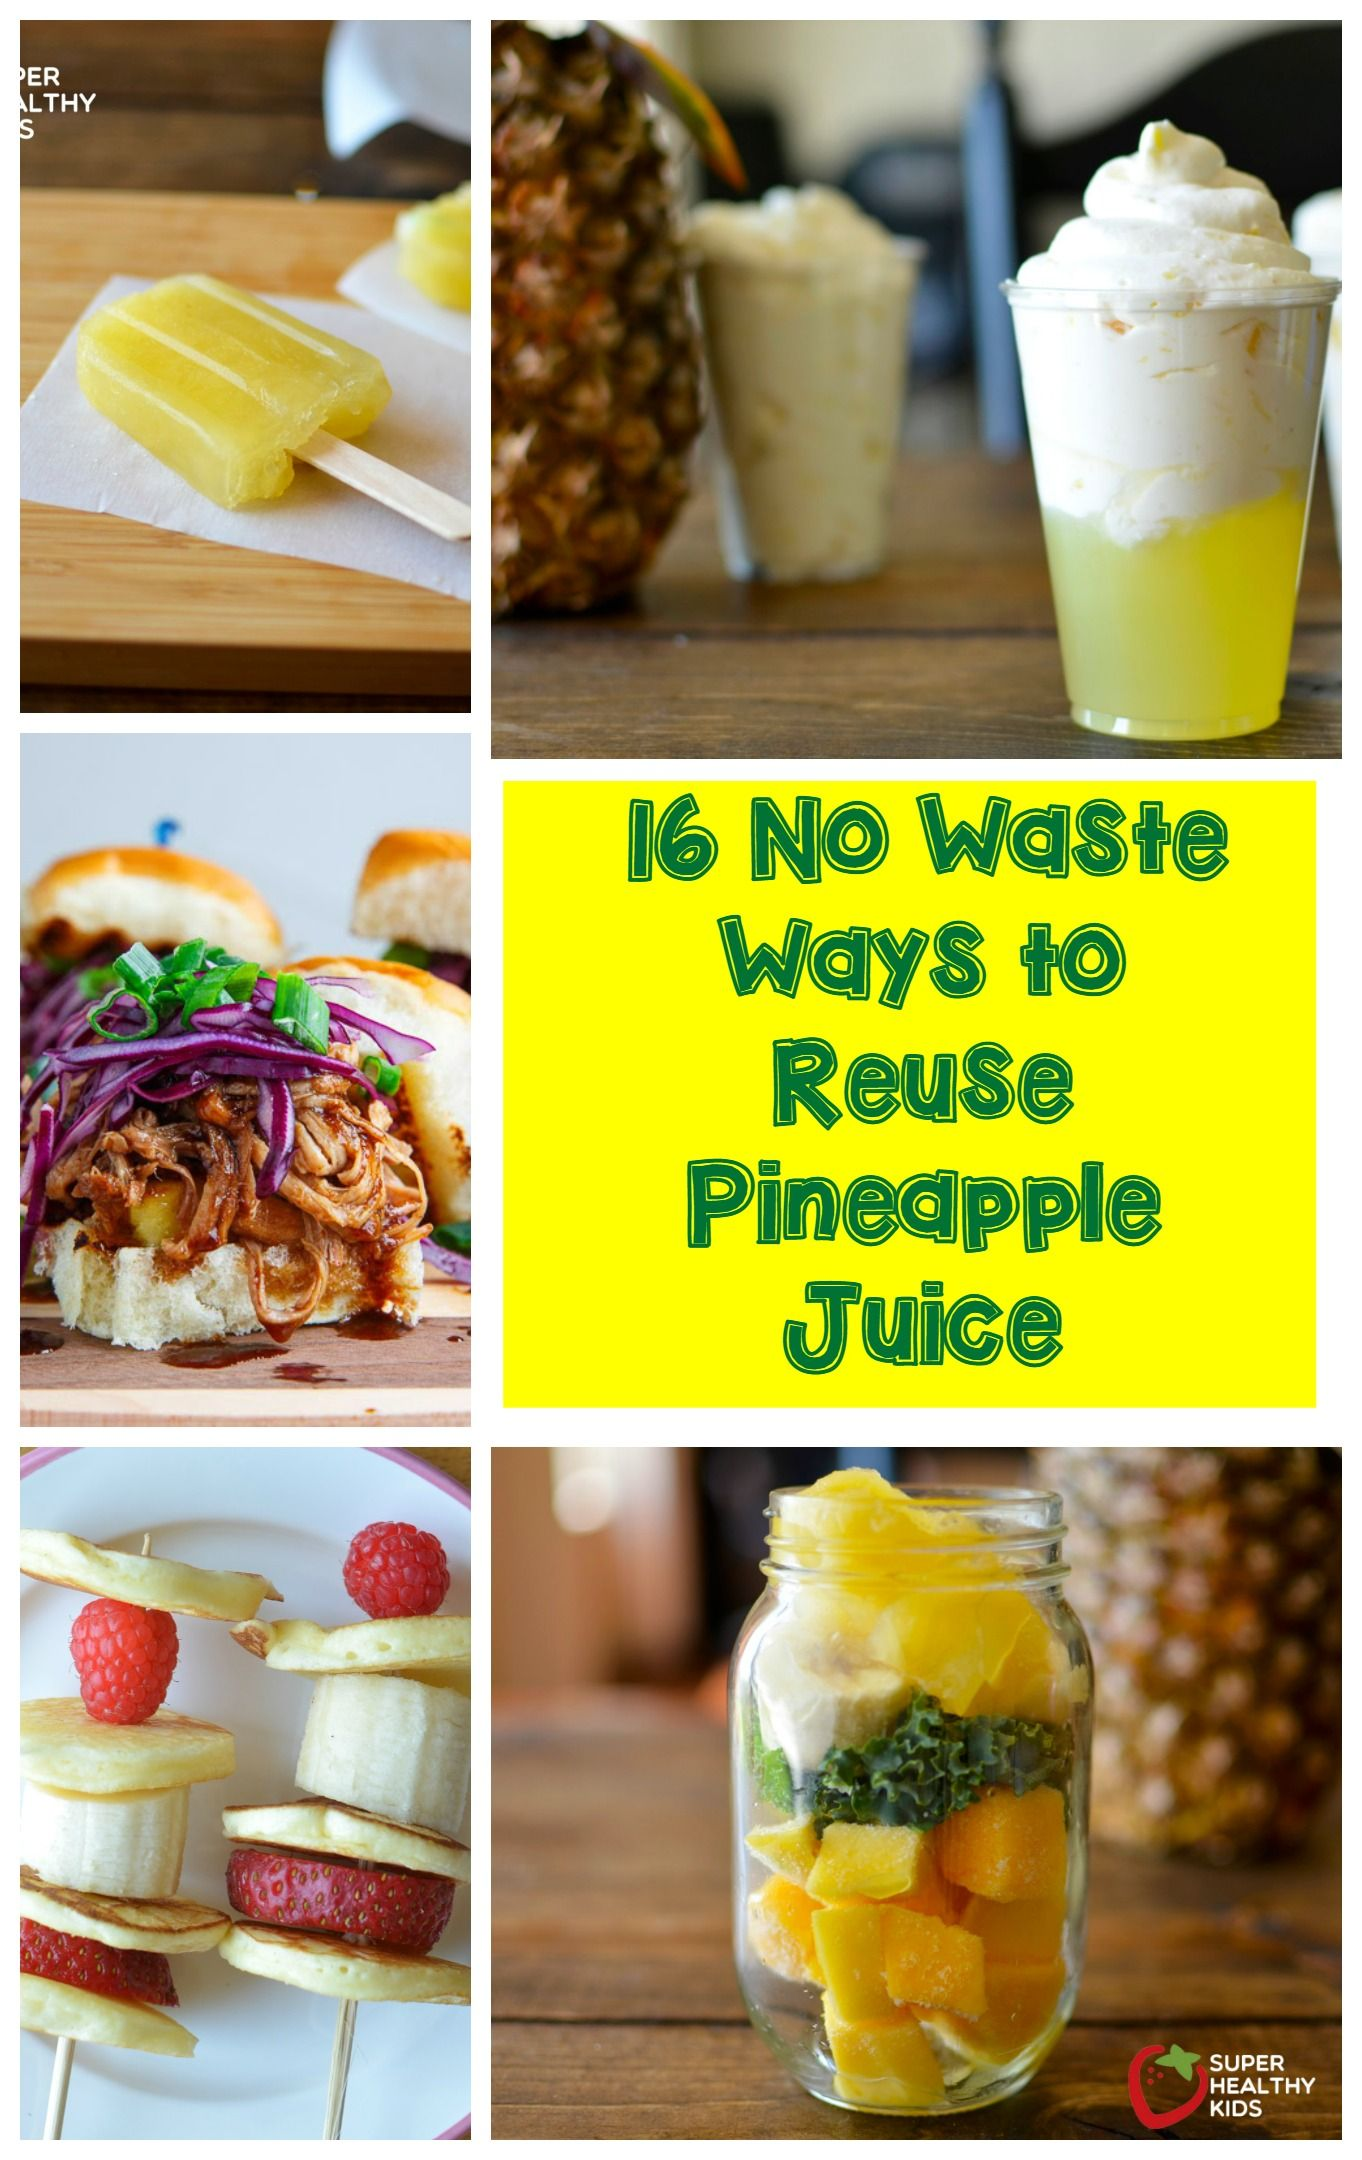 16 Brilliant Ways To Use That Pineapple Juice You Almost Poured Down The Drain Juice Recipes For Kids Pineapple Recipes Pineapple Juice